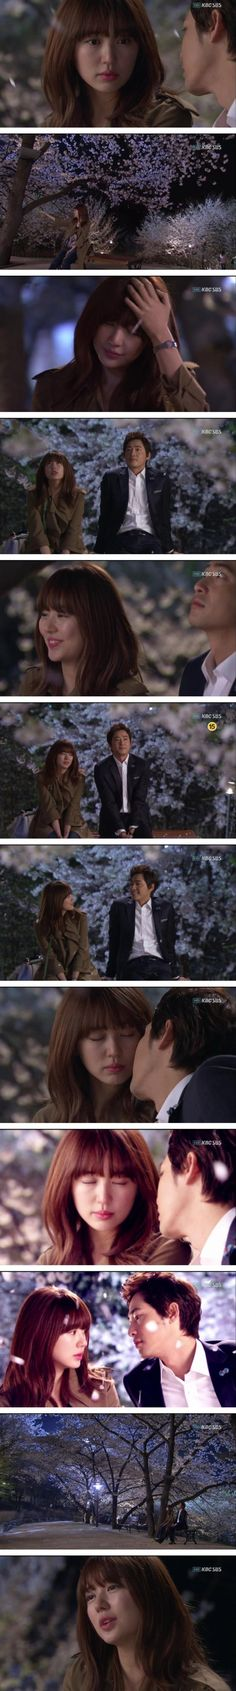 http://www.hancinema.net/korean_drama_Lie_to_Me-picture_172508.html?sort=Most_Popular_Pictures